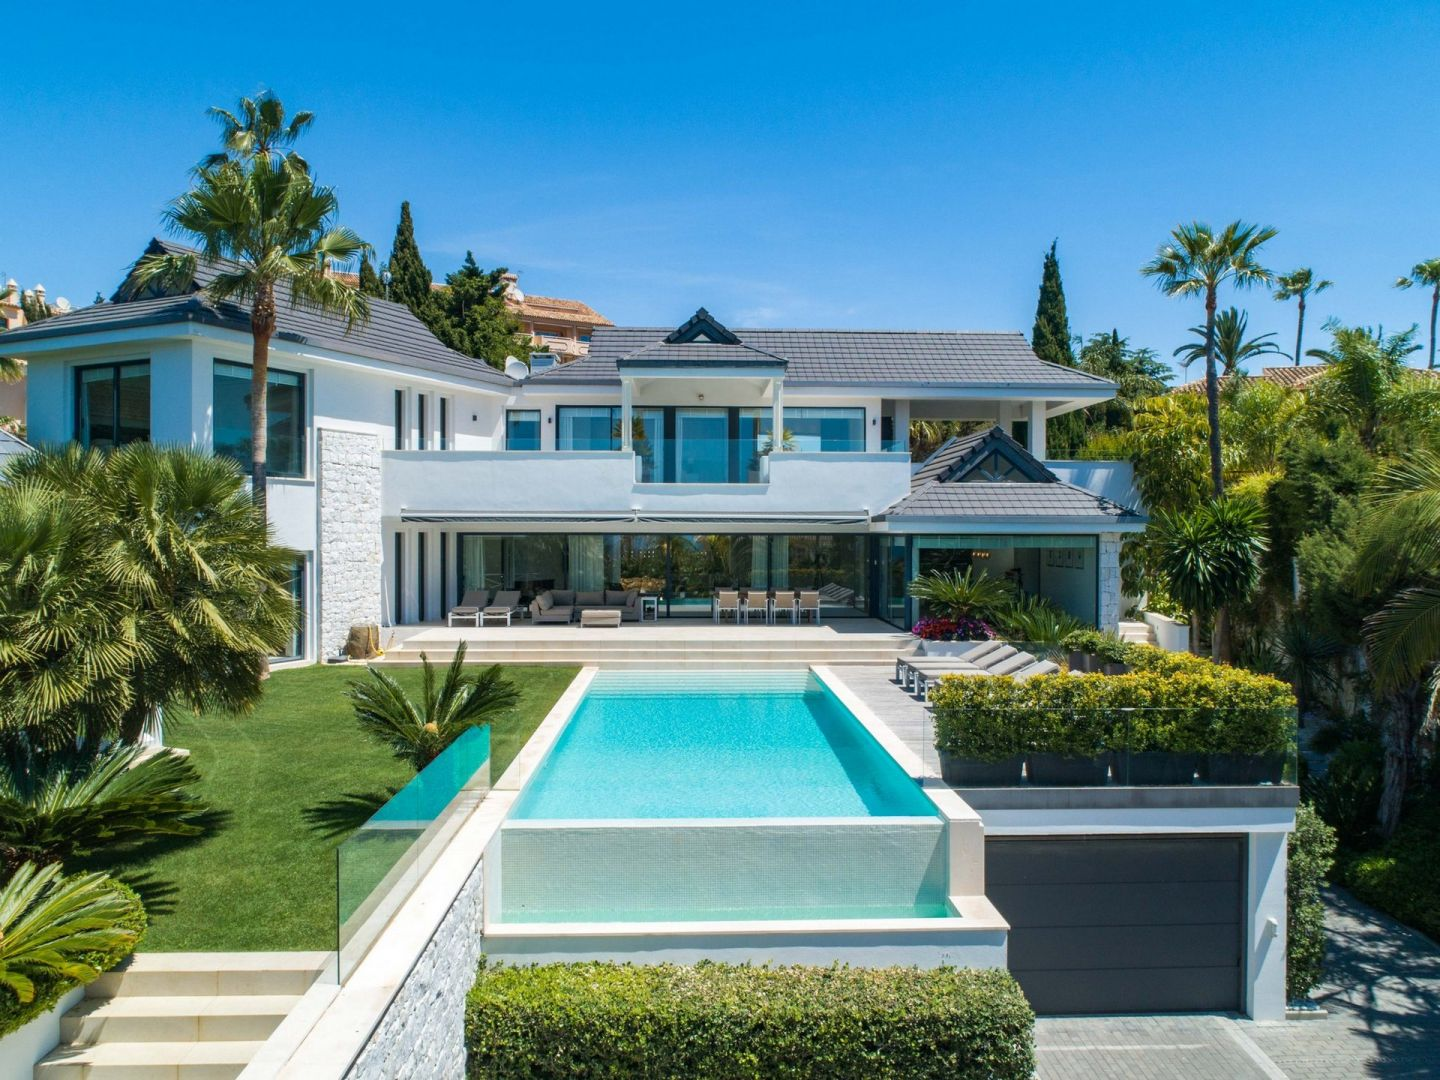 Marbella Property: Luxury Villas and Apartments for sale